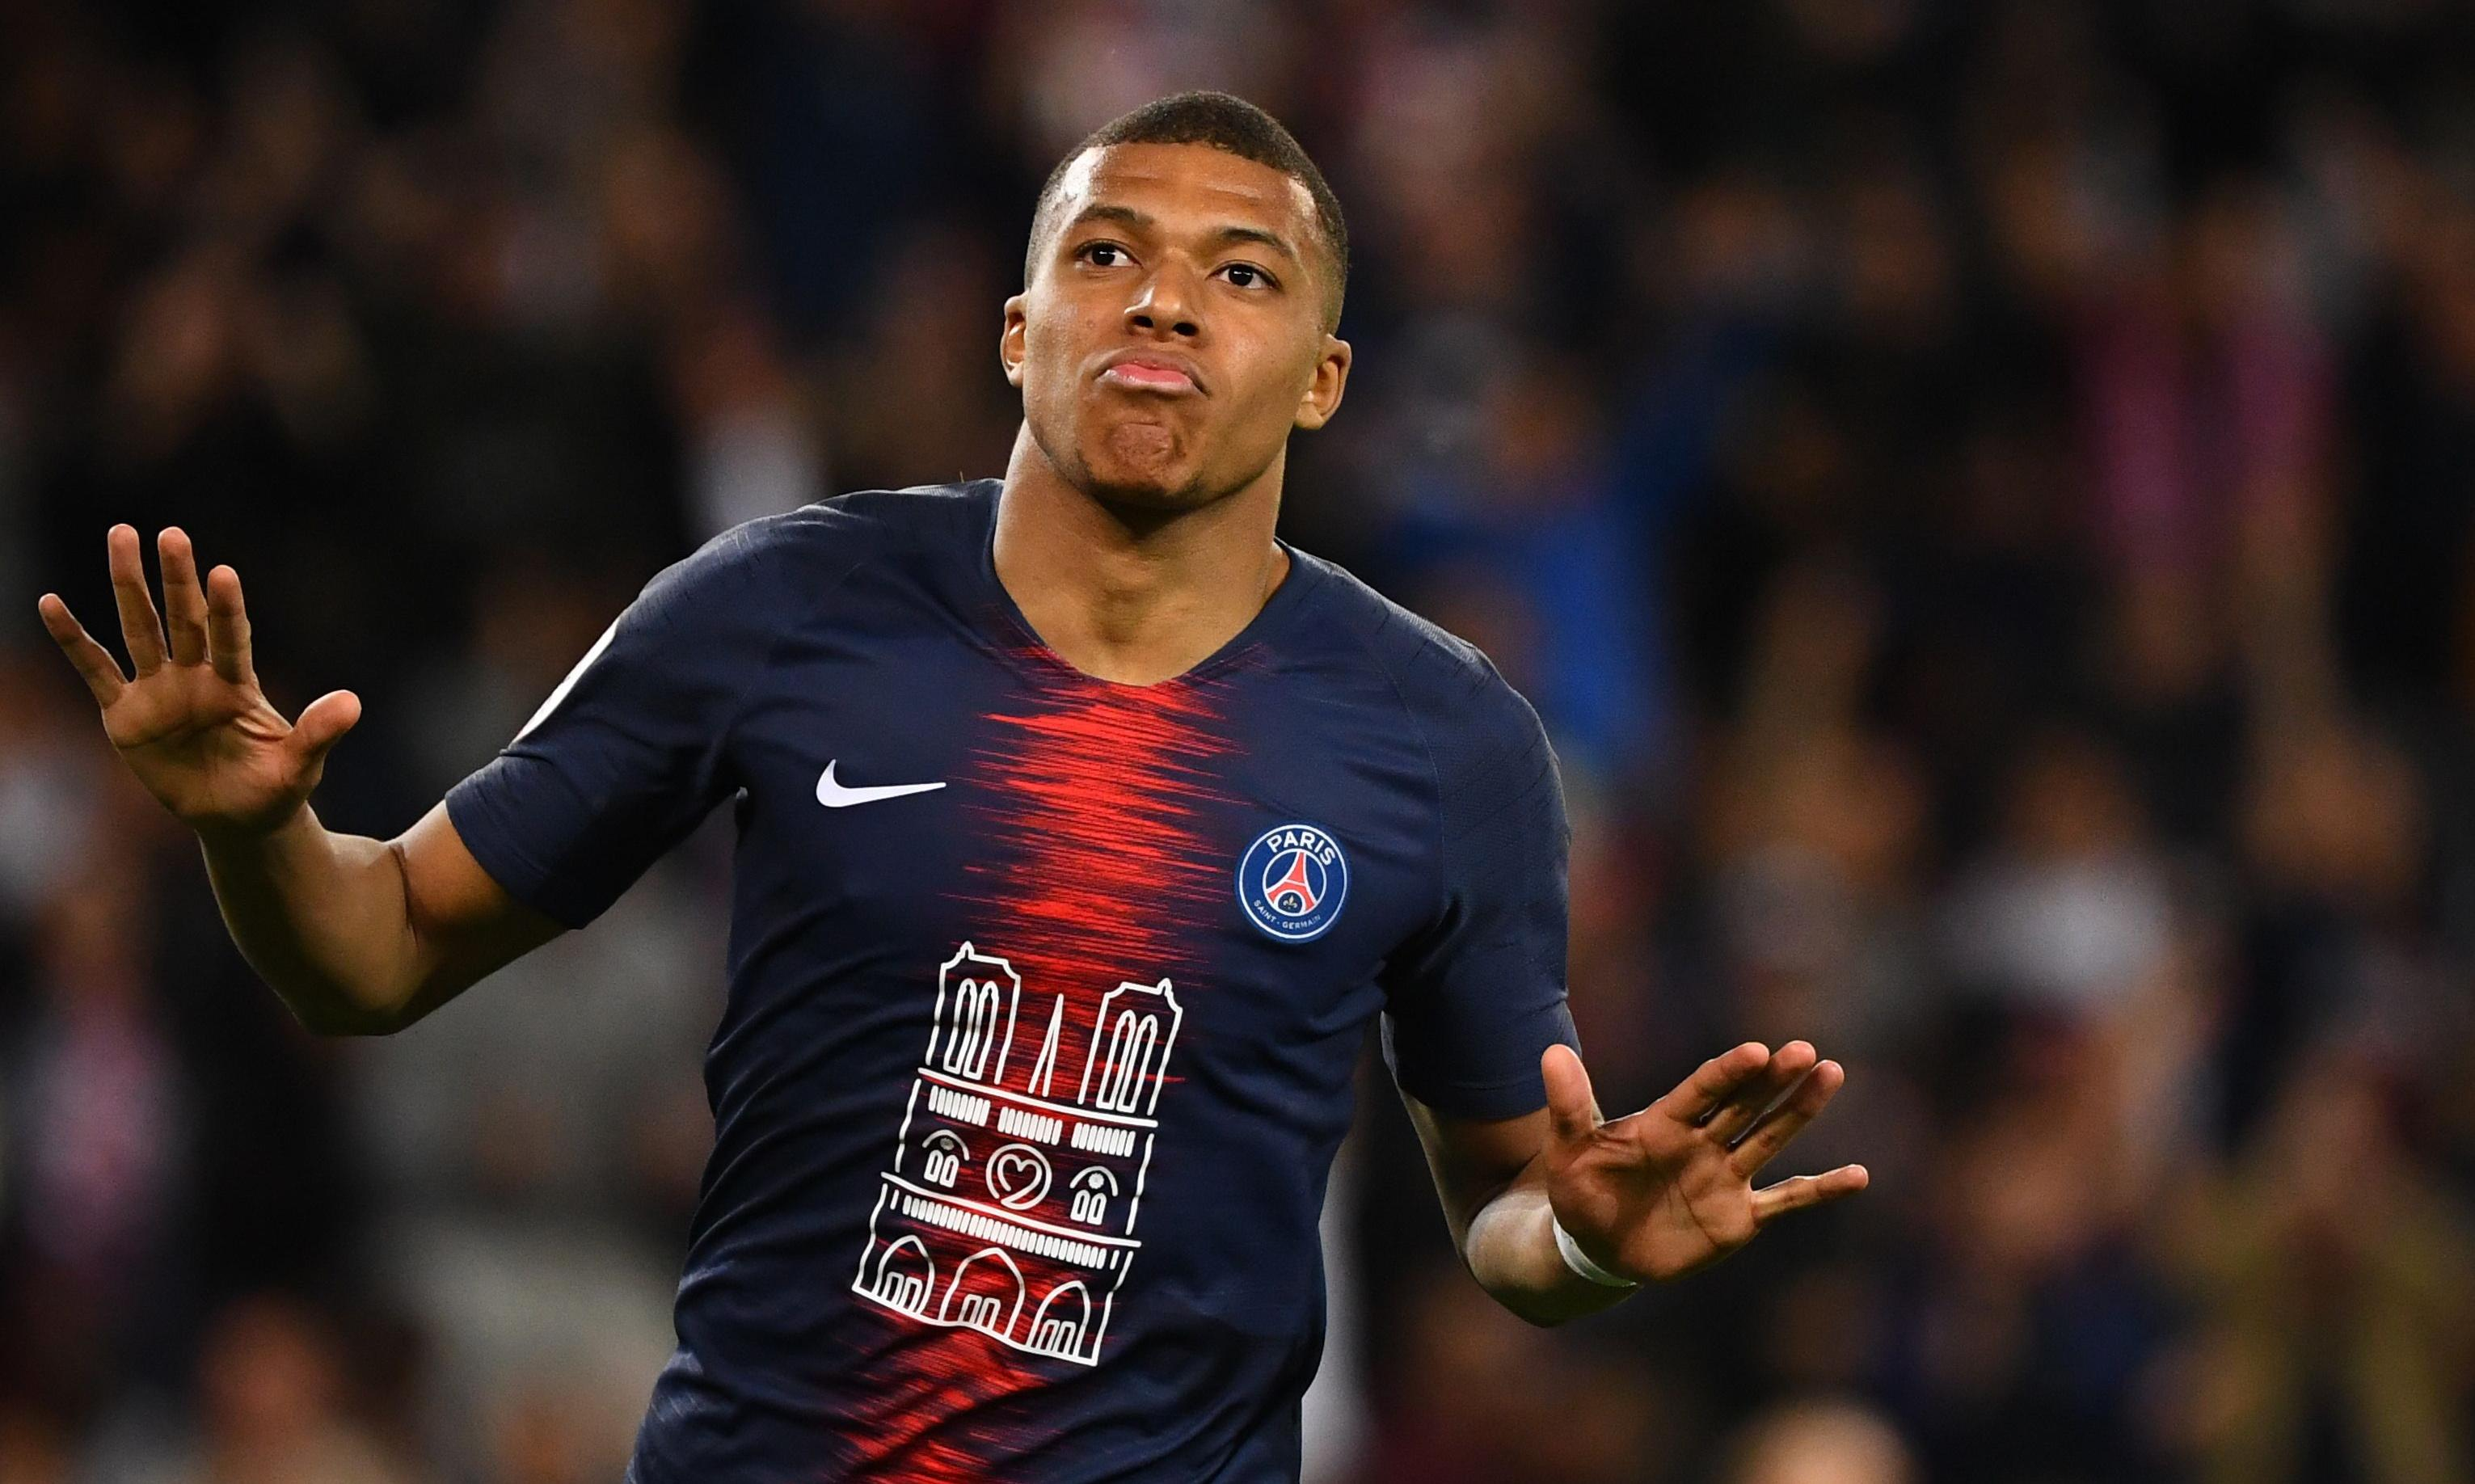 PSG are champions again. Now they need to give youth a chance